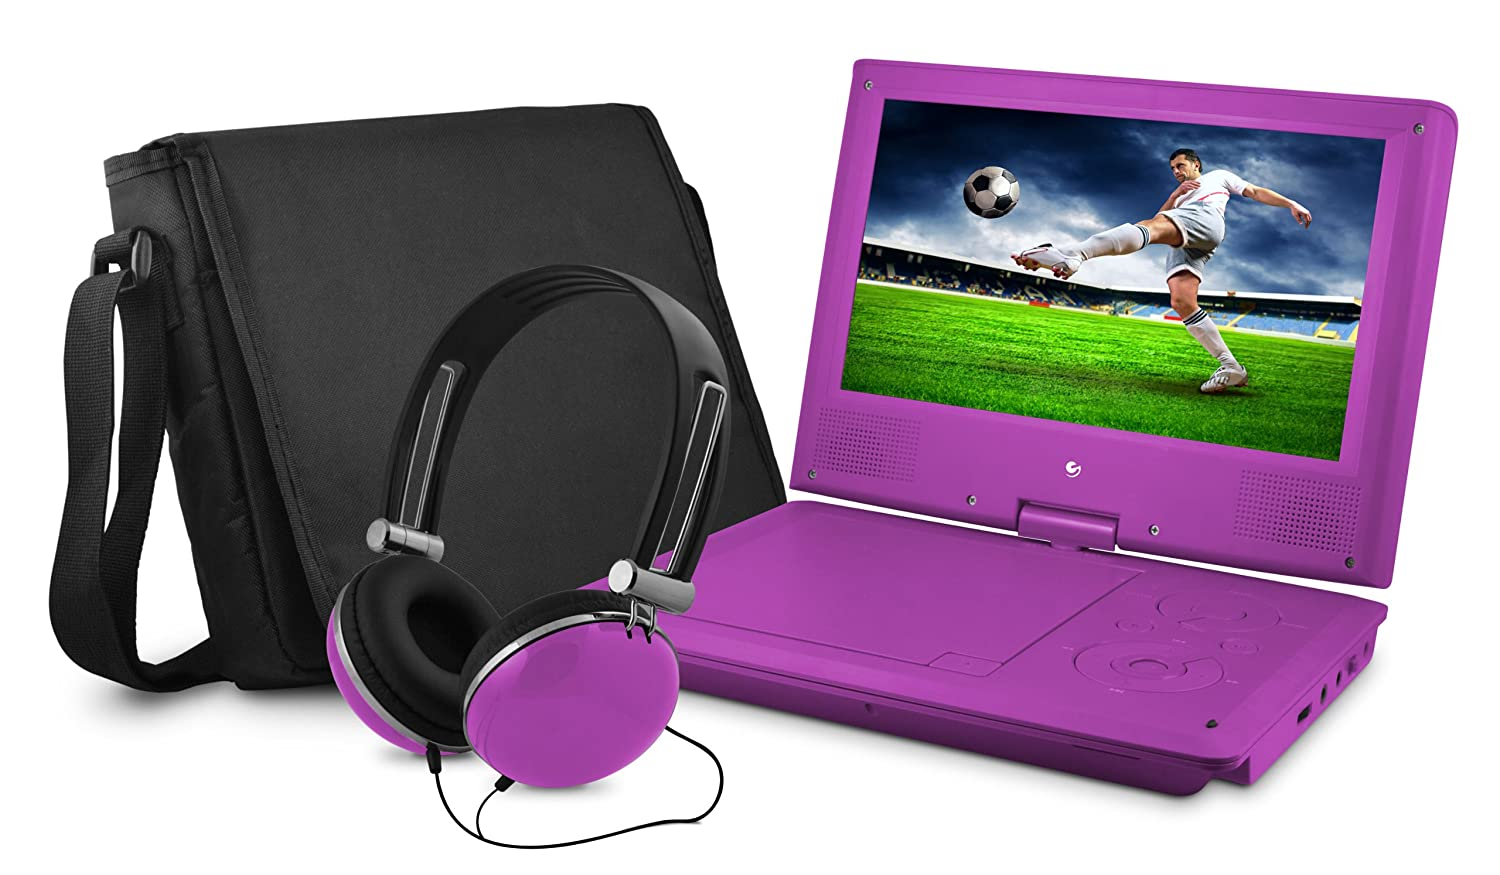 DVD Player, Ematic 9 inch Purple Portable DVD Player with Matching Headphones and Bag ( EPD909PR)